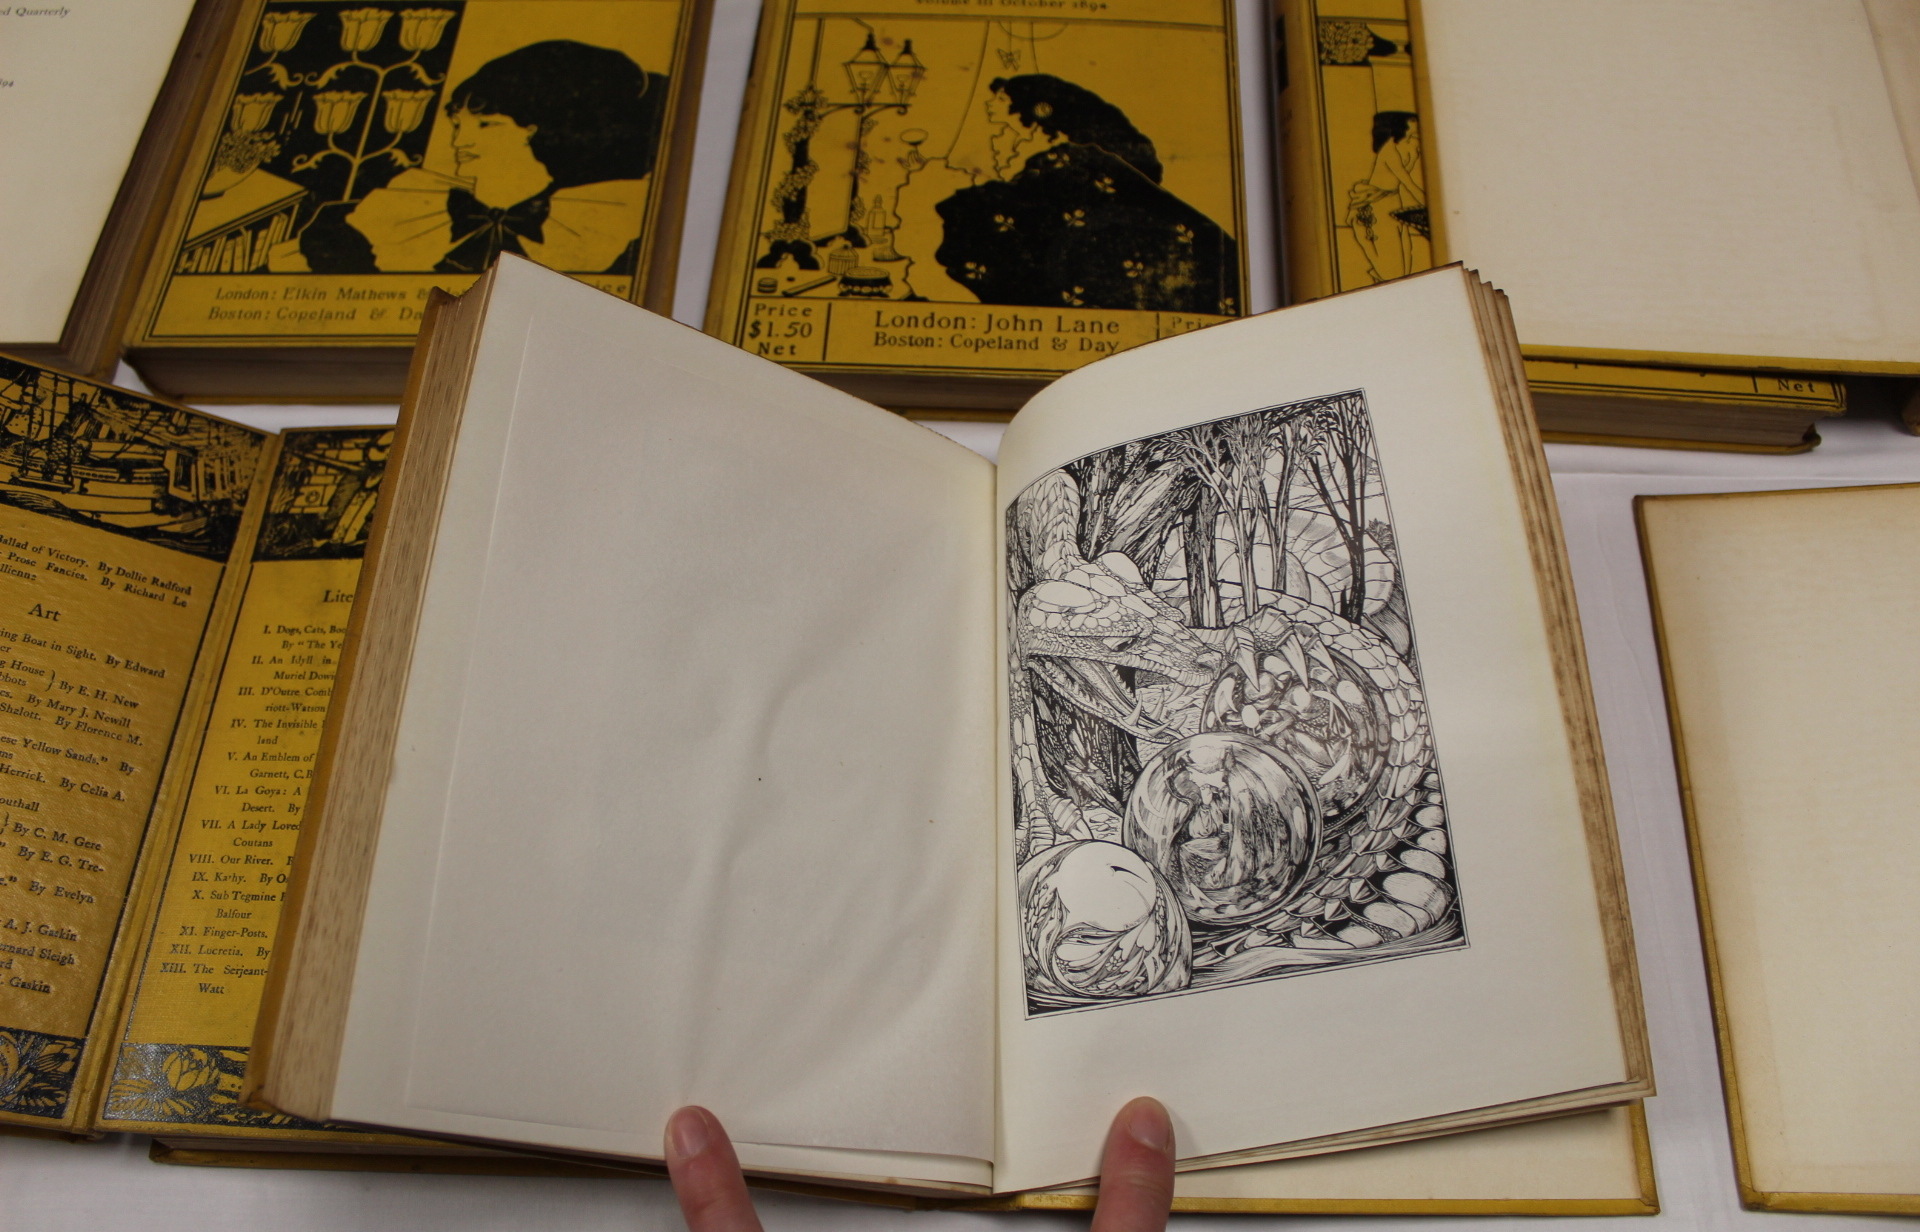 THE YELLOW BOOK.An Illustrated Quarterly. A set of 13 vols., many fine illus. Small quarto. - Image 19 of 45